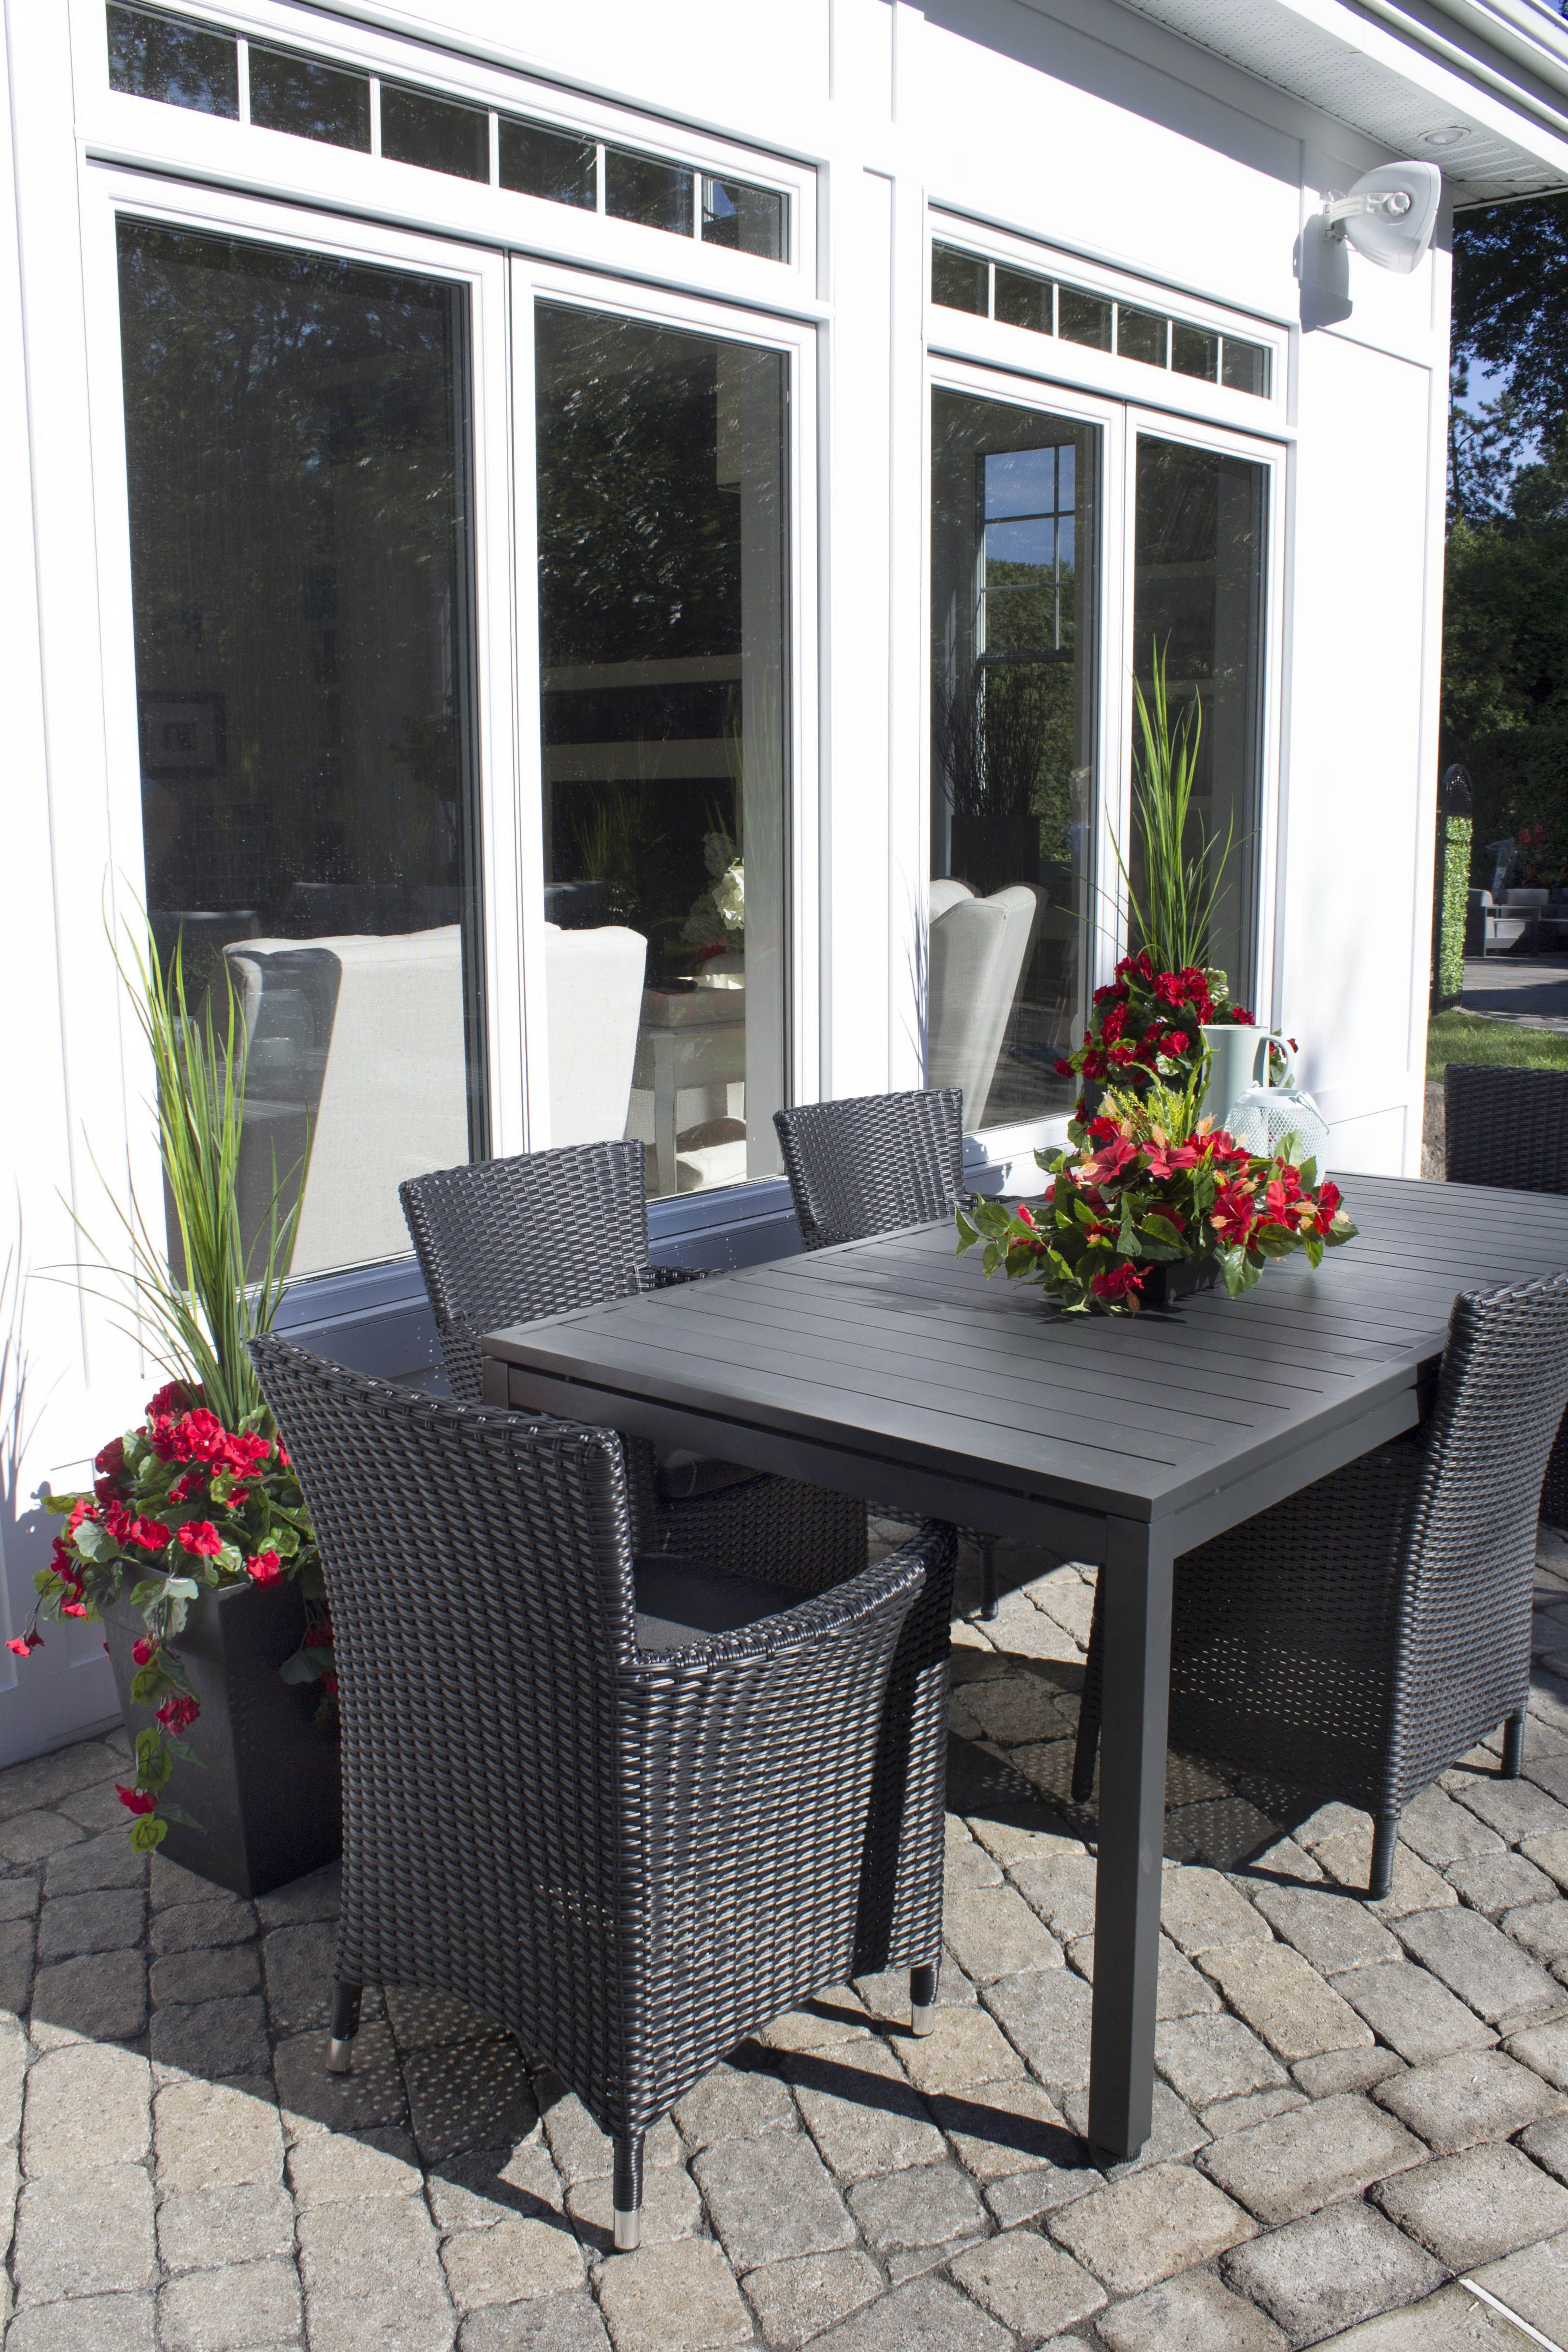 Modern outdoor space with artificial plants